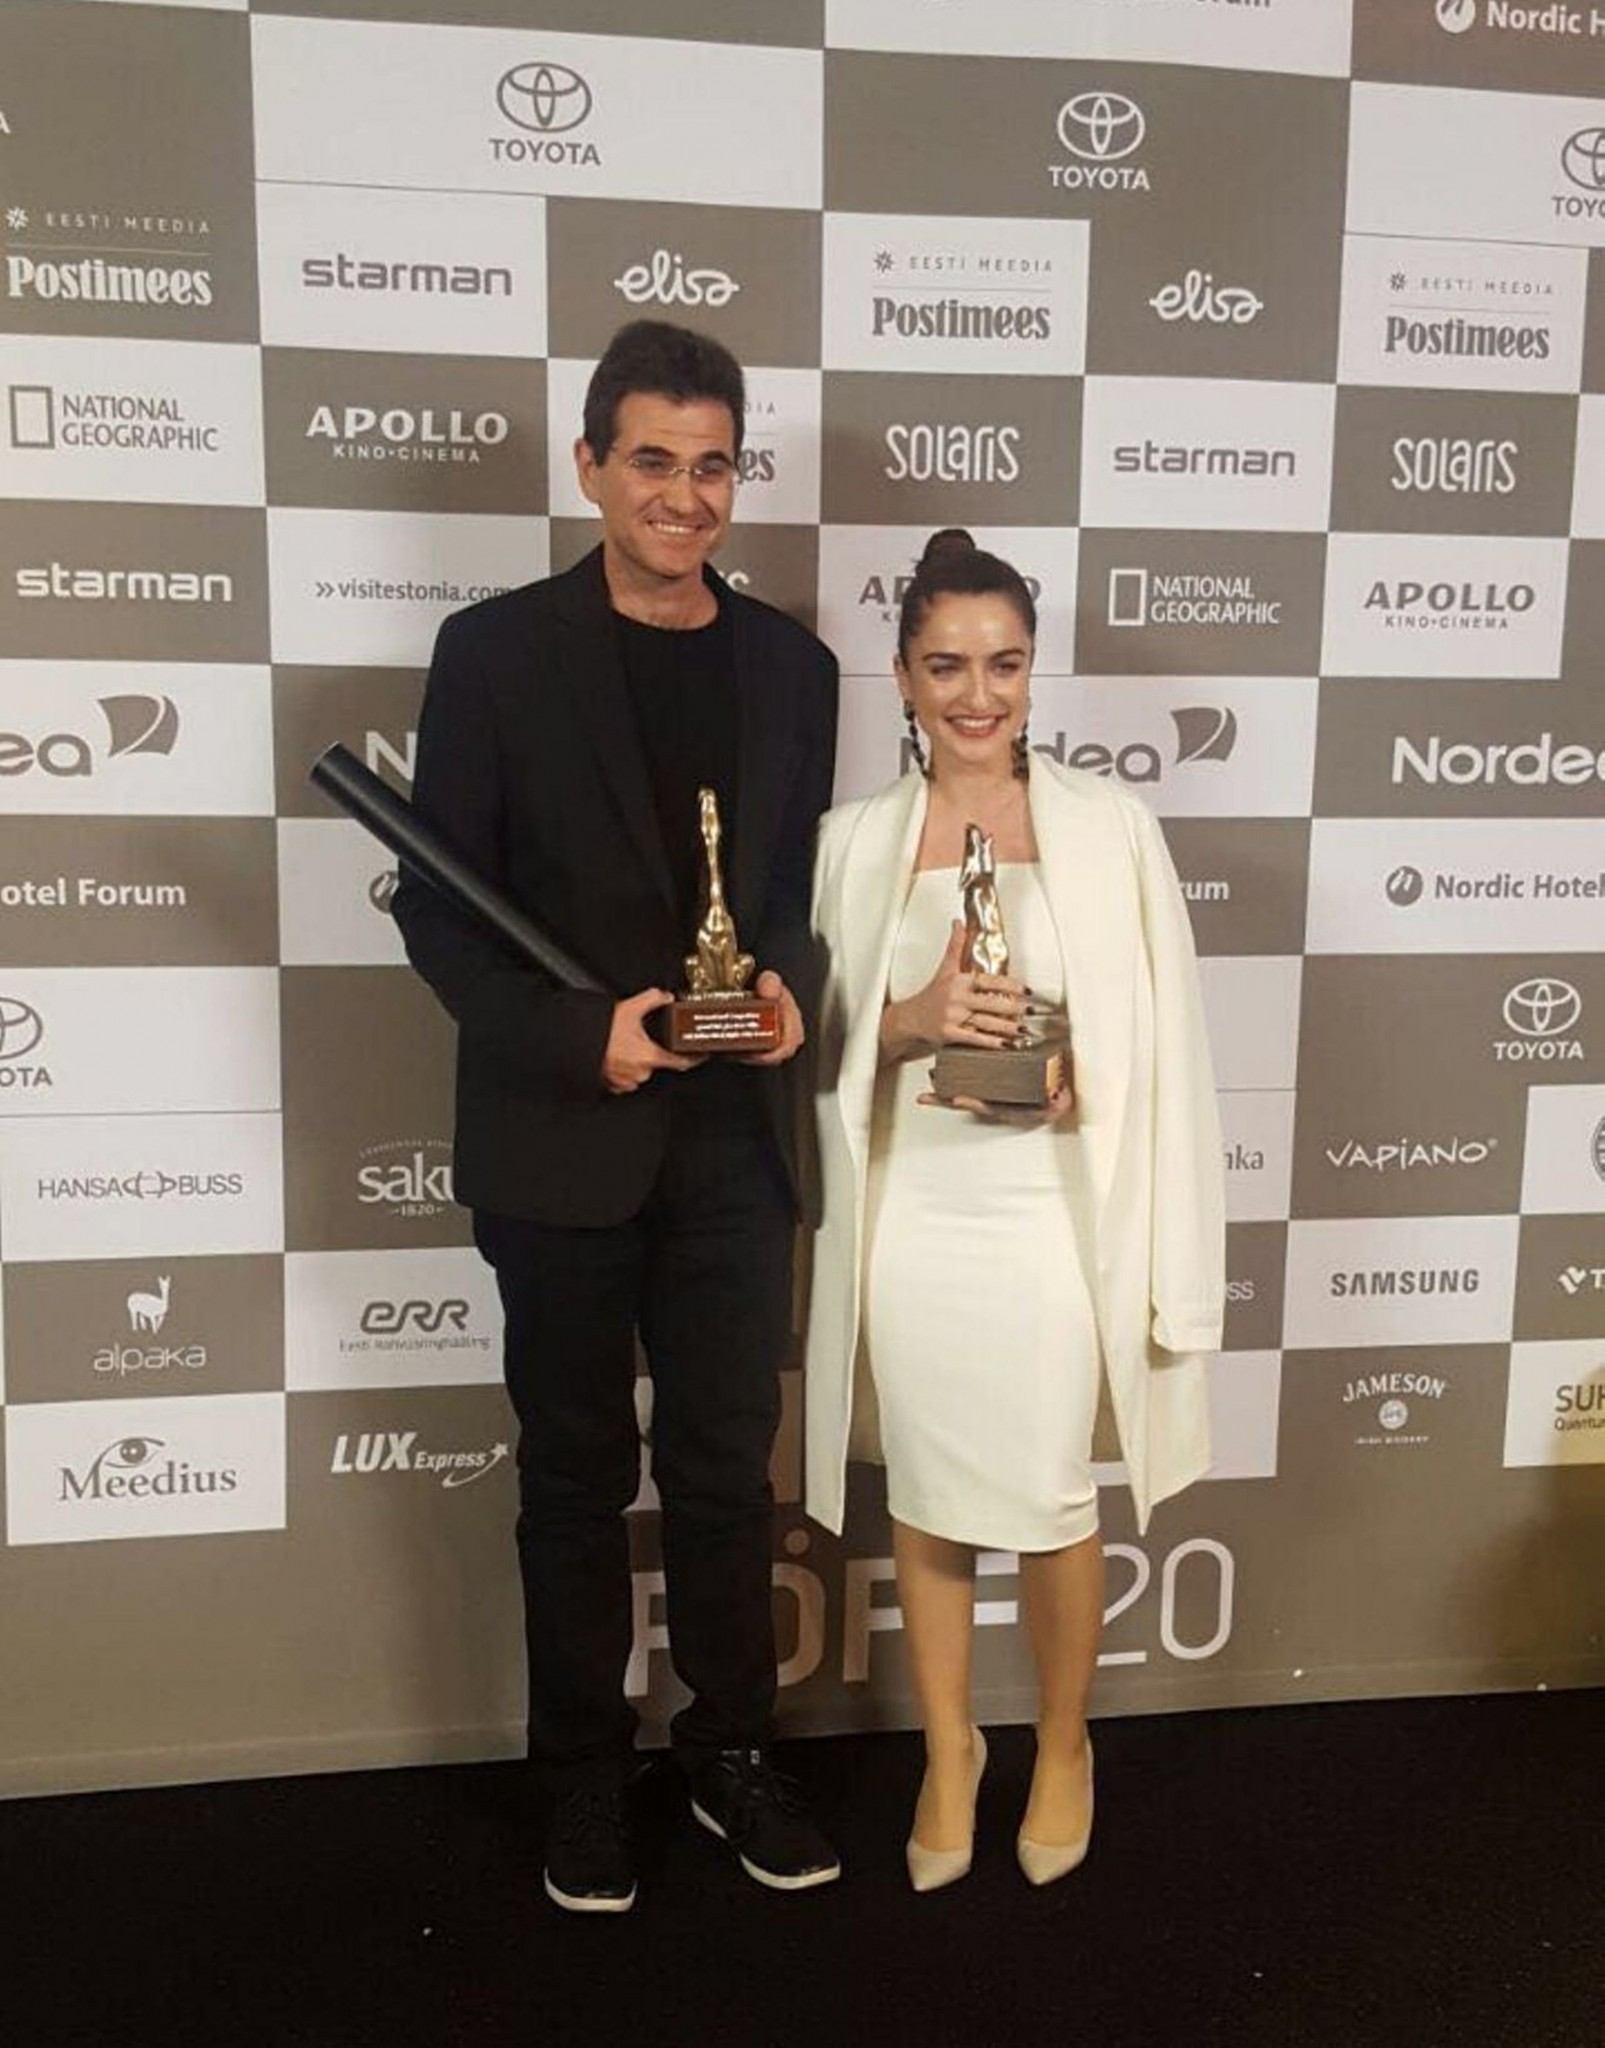 Israeli director Eitan Anner collected the Grand Prix at the 20th Tallinn Black Nights Film Festival and Ania Bukstein was awarded as the best actress. Photo courtesy